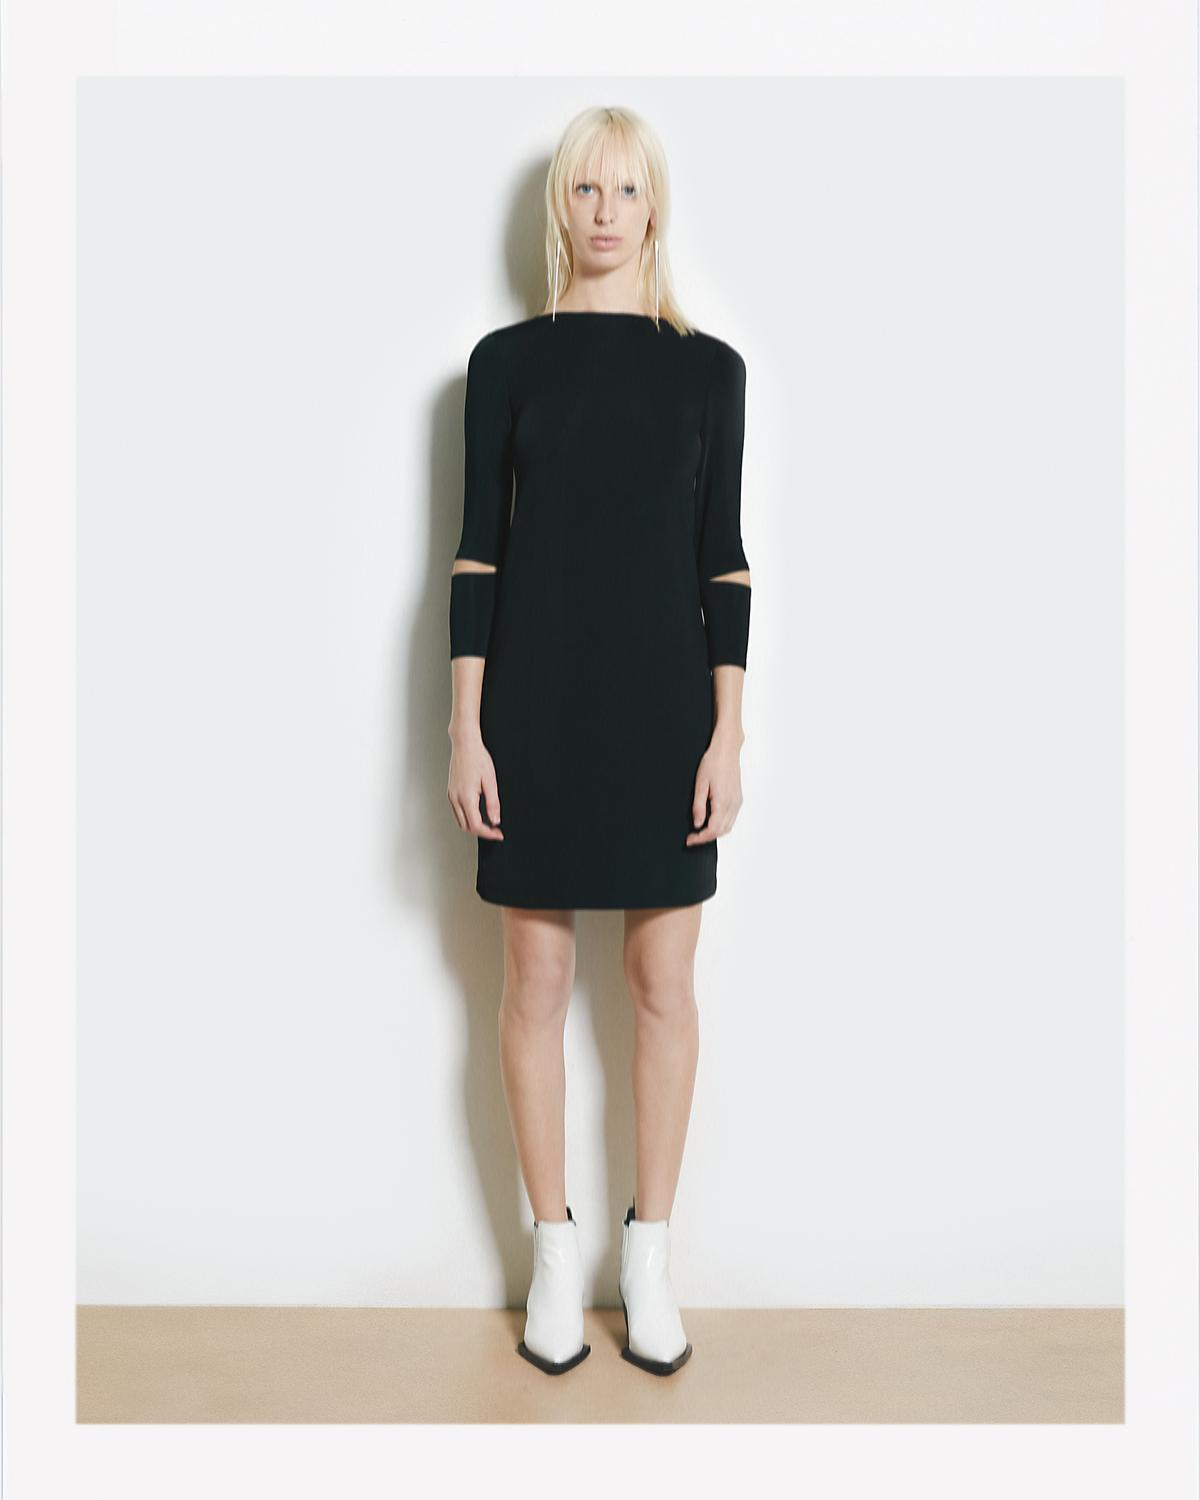 DETACHED CUFF BONDAGE DRESS